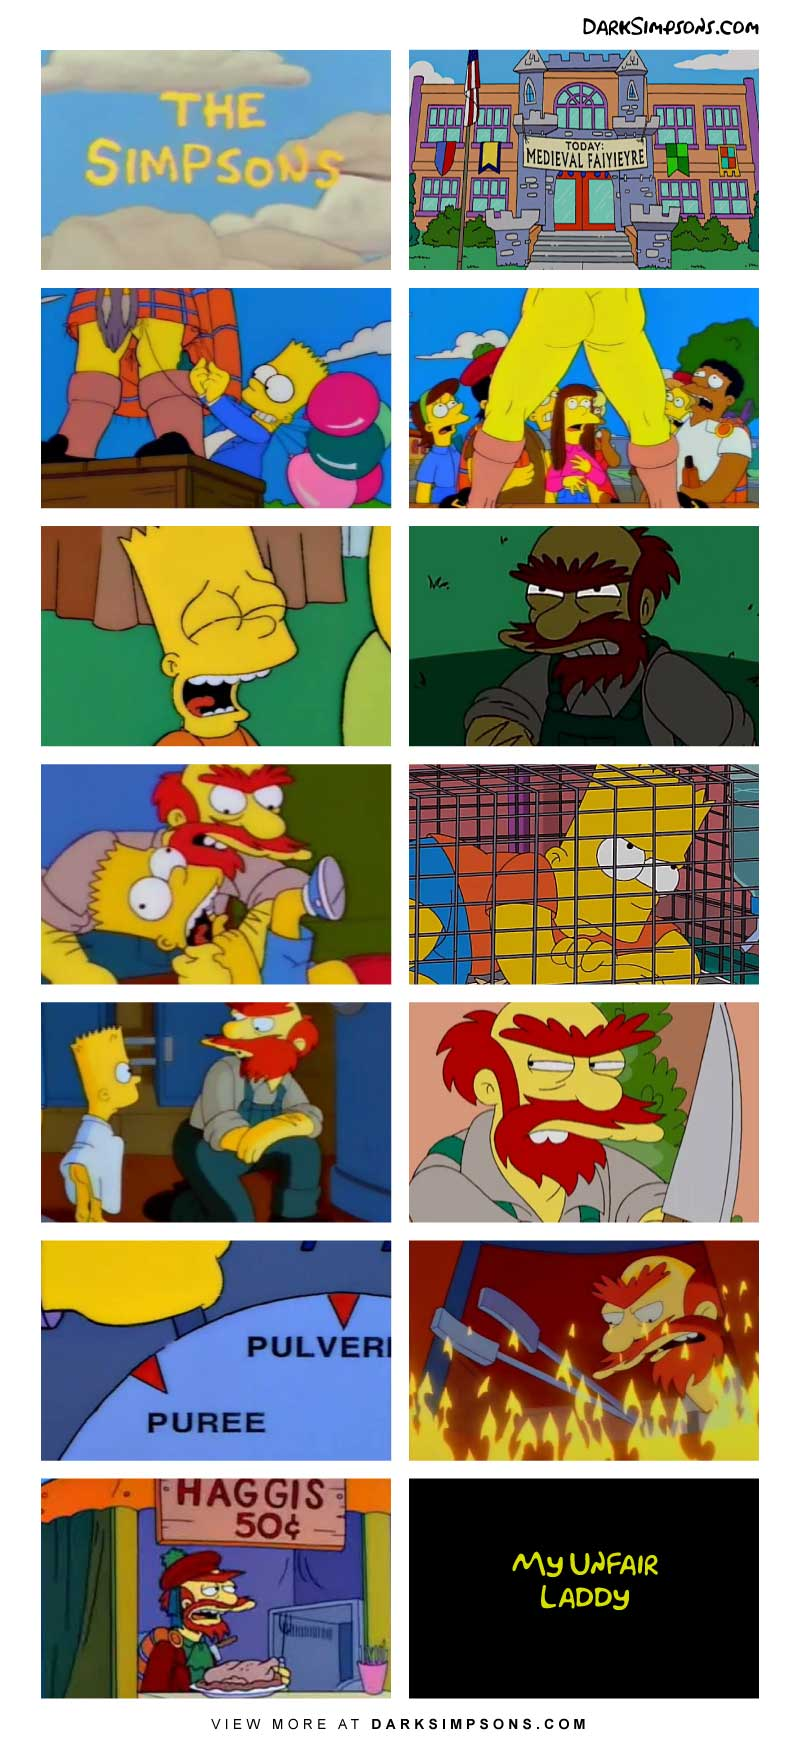 Springfield Elementary is holding a medieval festival! This is the perfect opportunity for Bart to pull off one of his patented pranks, today's target, Groundskeeper Willie.